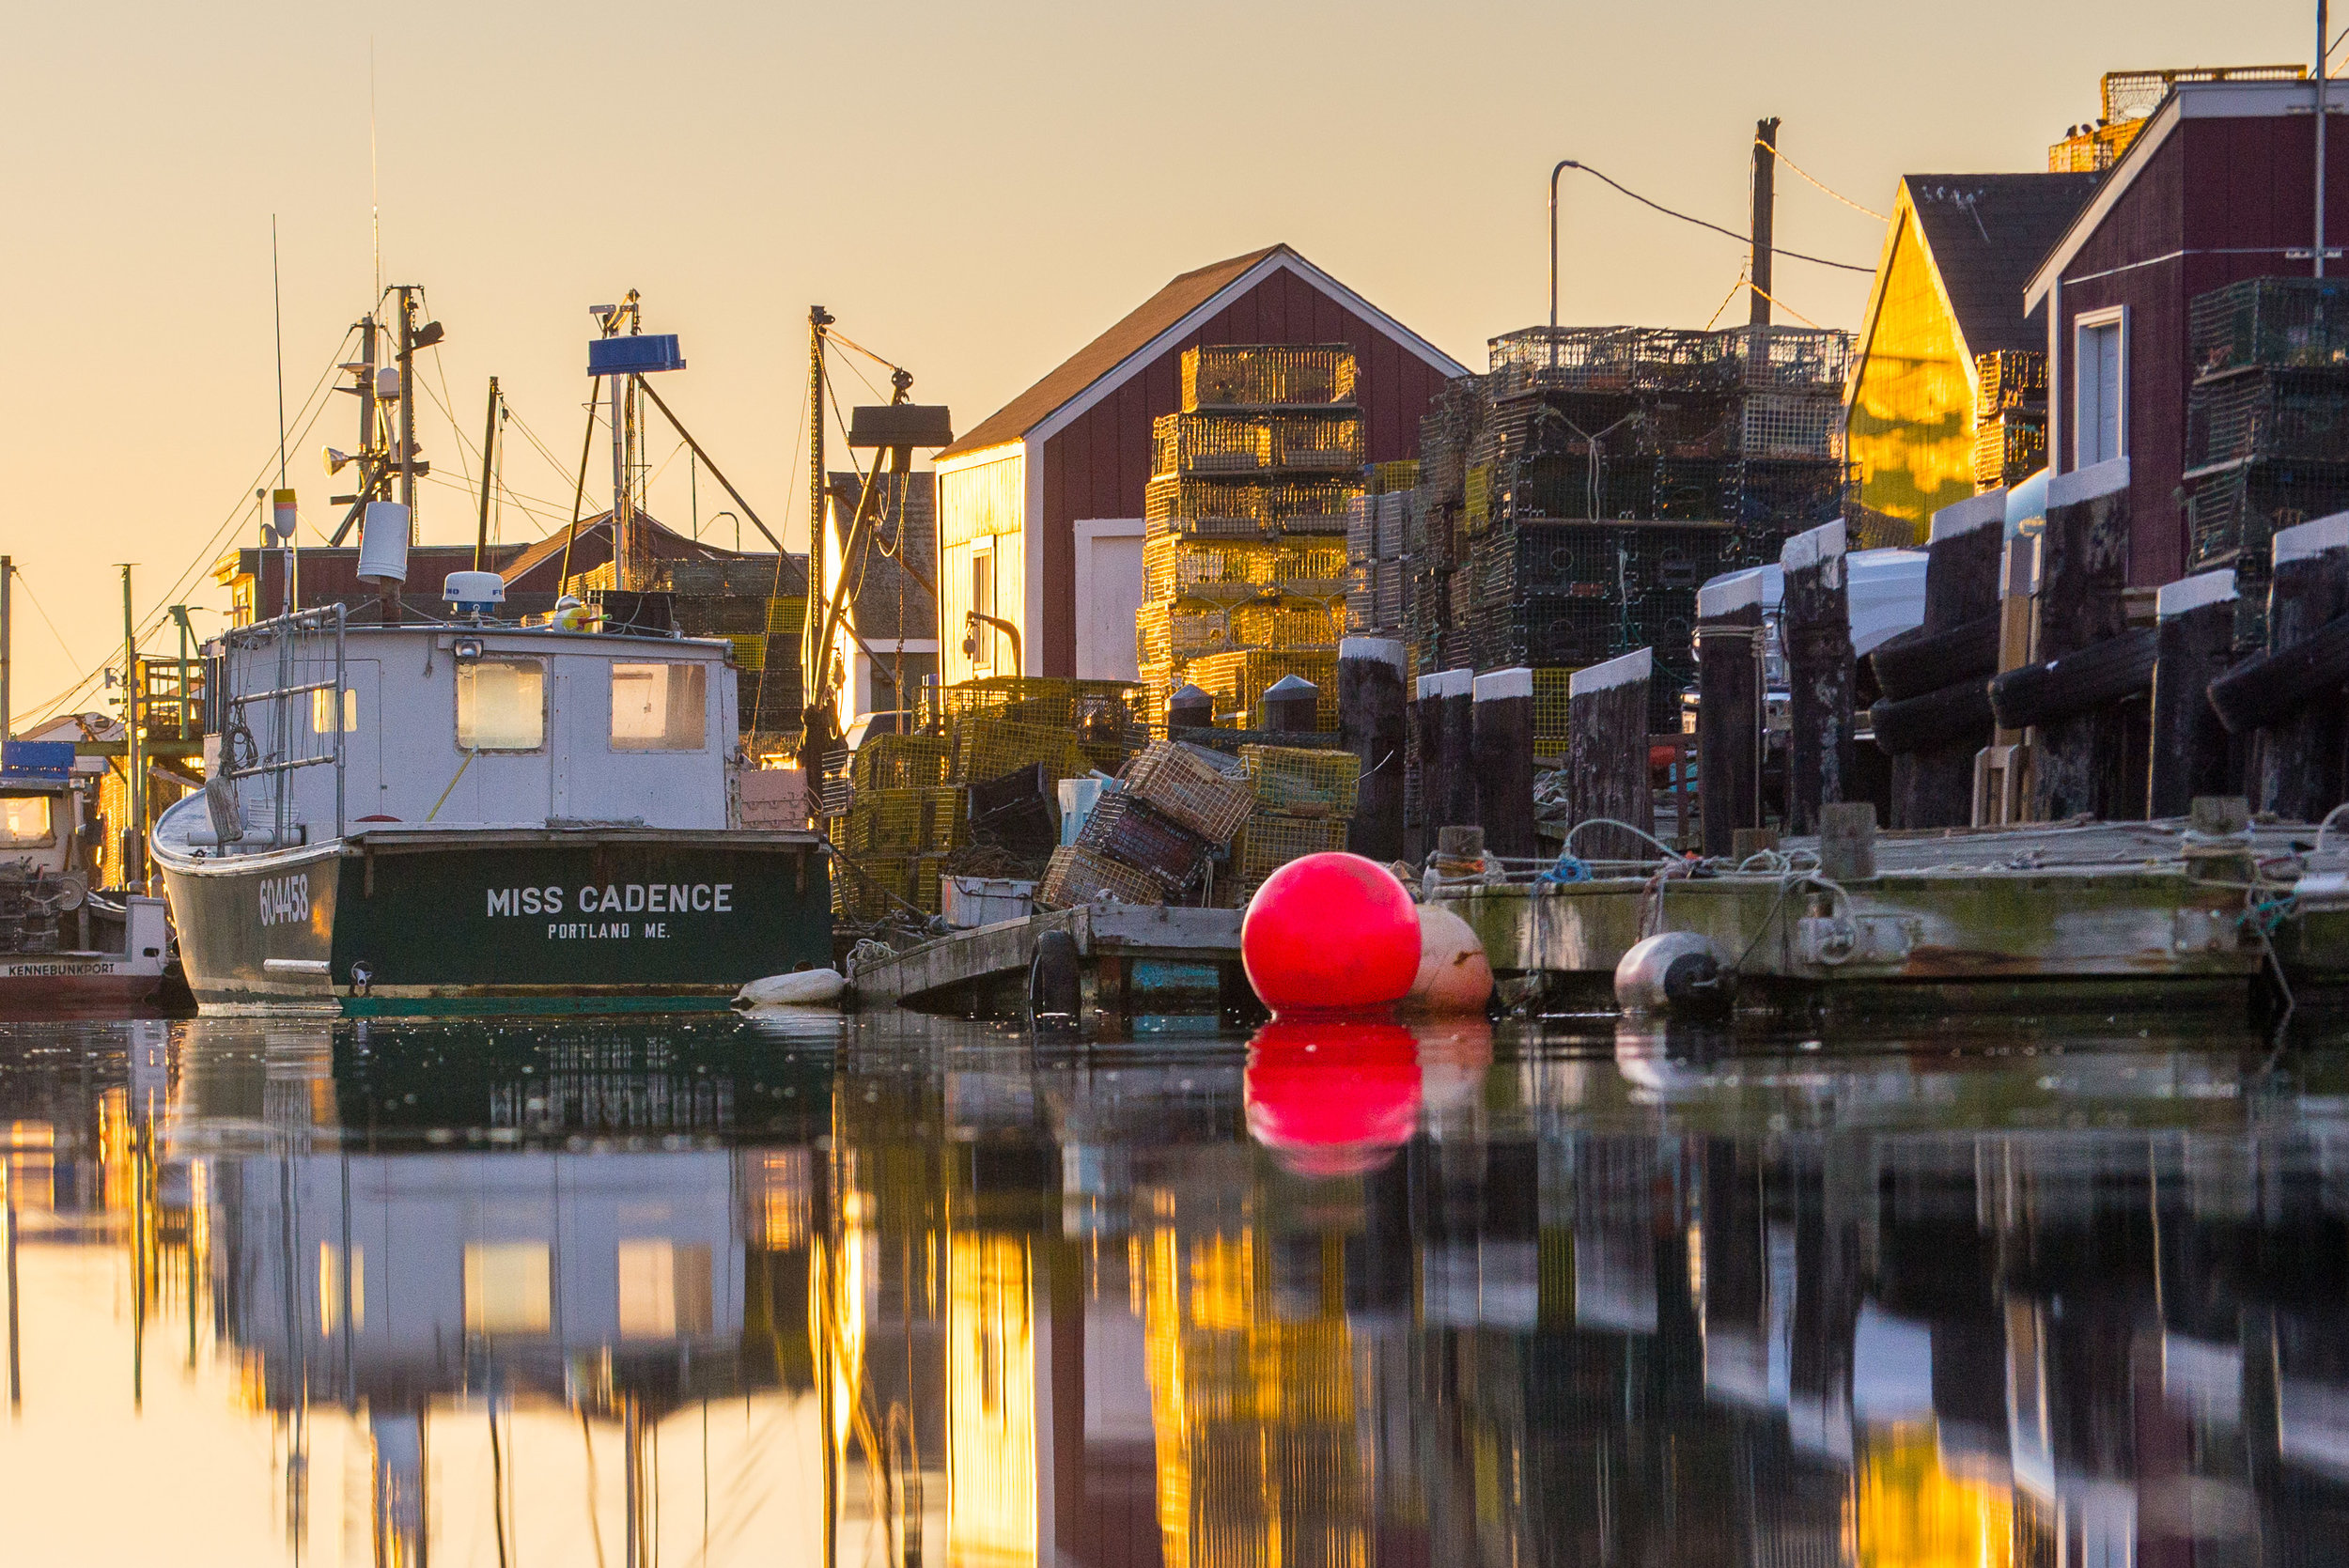 November_2017_Portland_Maine_20171130-DSC_4216 By Corey Templeton Morning Light at Widgery Wharf - large.jpg